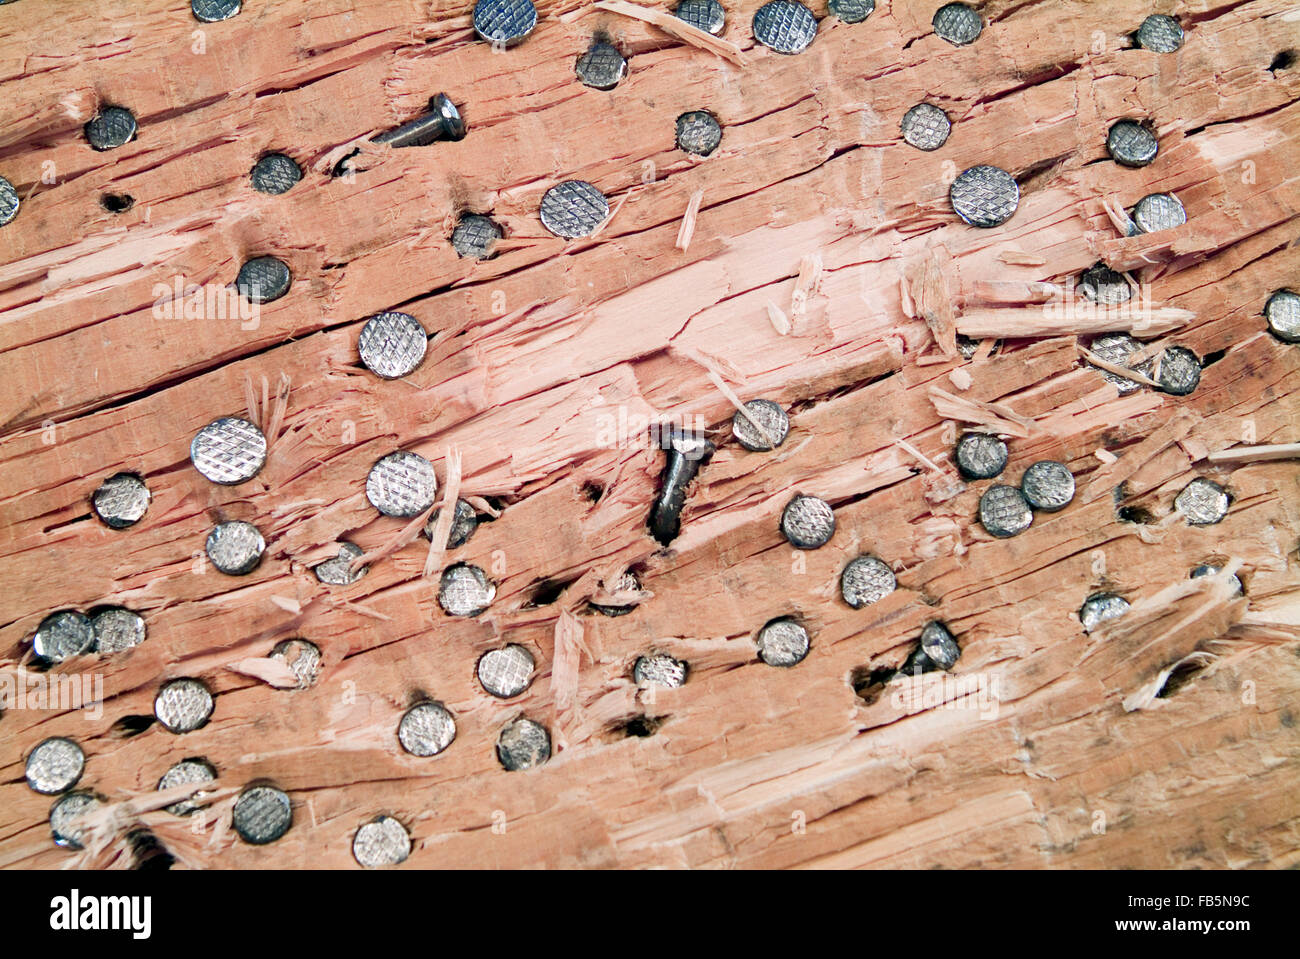 Funfair, wooden board with driven nails into Germany Europe - Stock Image